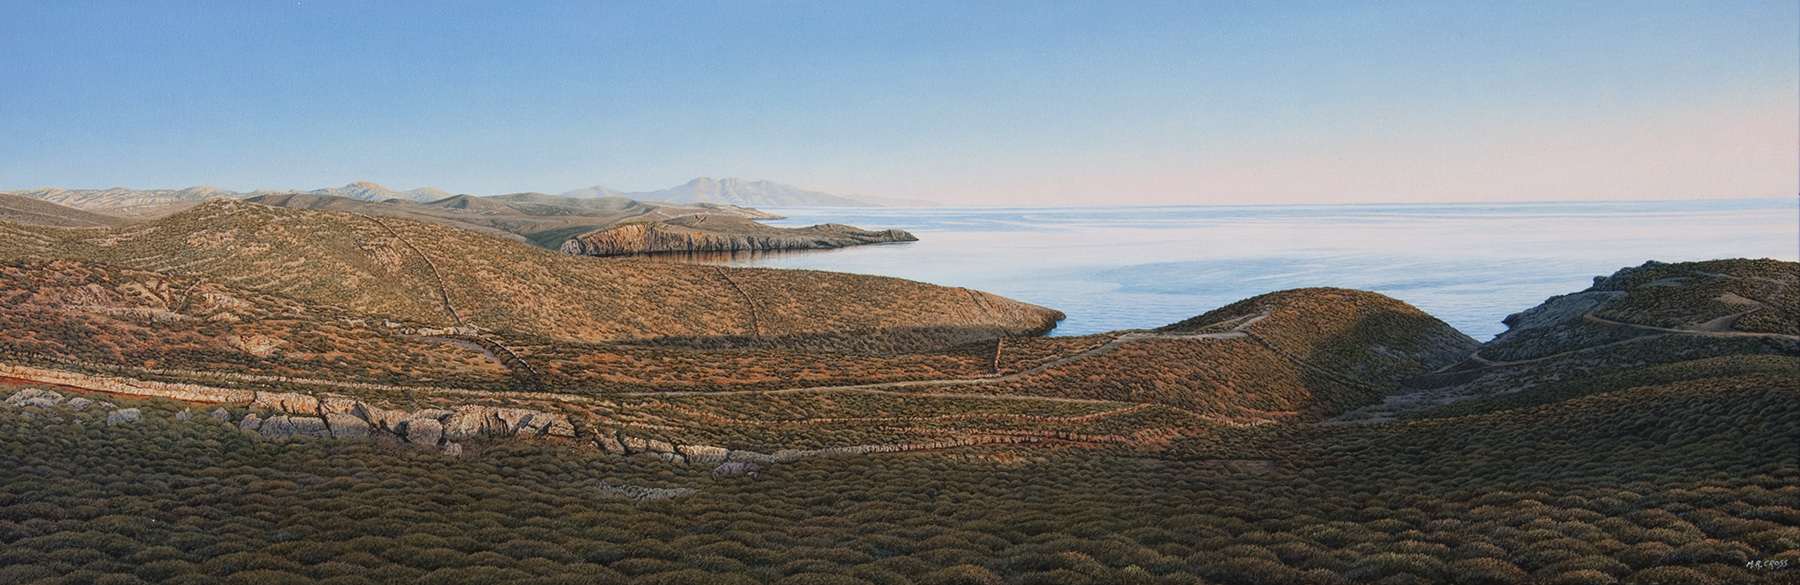 The Mykonian artwork by Mark Cross - art listed for sale on Artplode